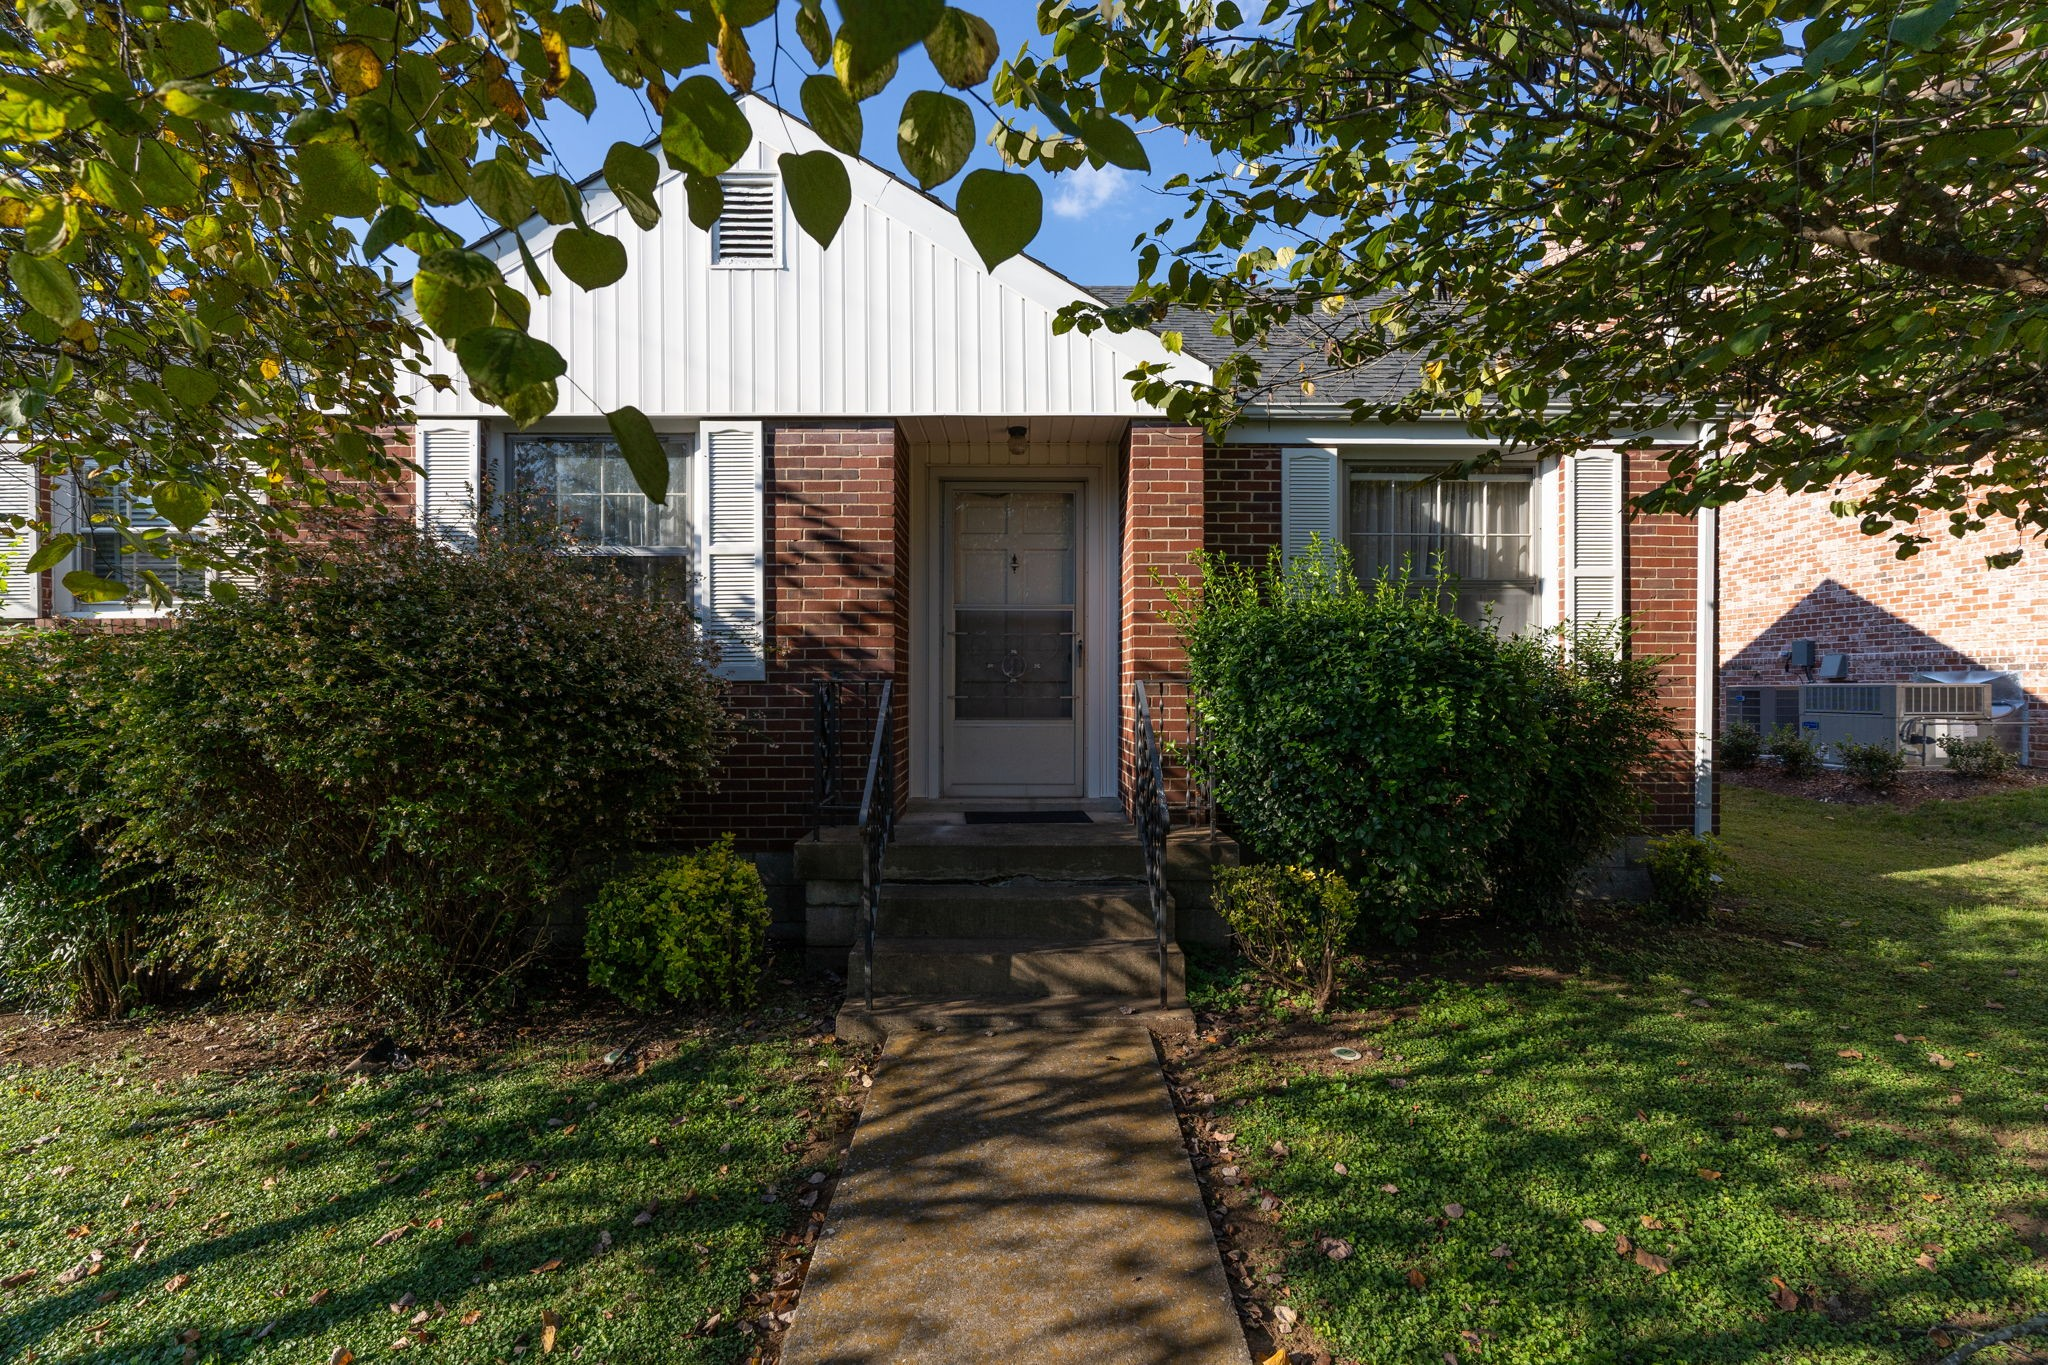 Beautiful level Corner lot in Sylvan Park area close to McCabe Golf Course Park with easy access to I-40 46th Avenue Exit just off of Charlotte Pike.